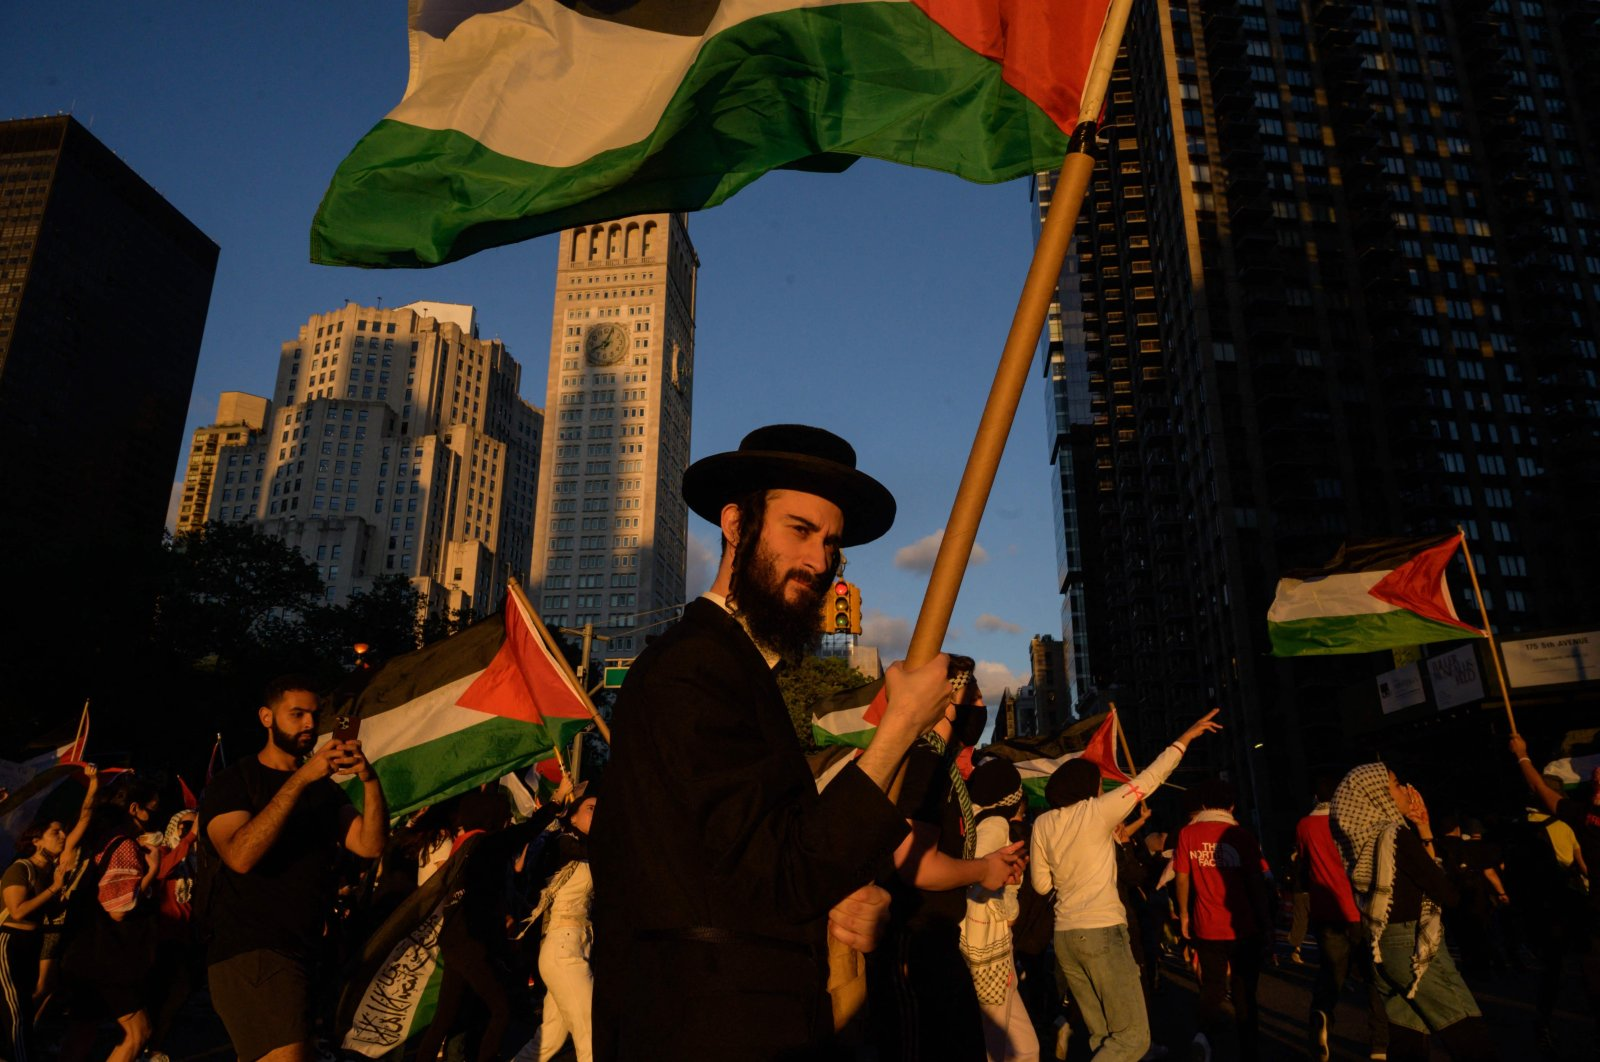 Pro-Palestinian demonstrators and members of the Neturei Karta (NK) ultra-Orthodox Jewish movement (C) march during an 'emergency rally to defend Palestine' in Manhattan, New York, the U.S., June 15, 2021. (AFP Photo)